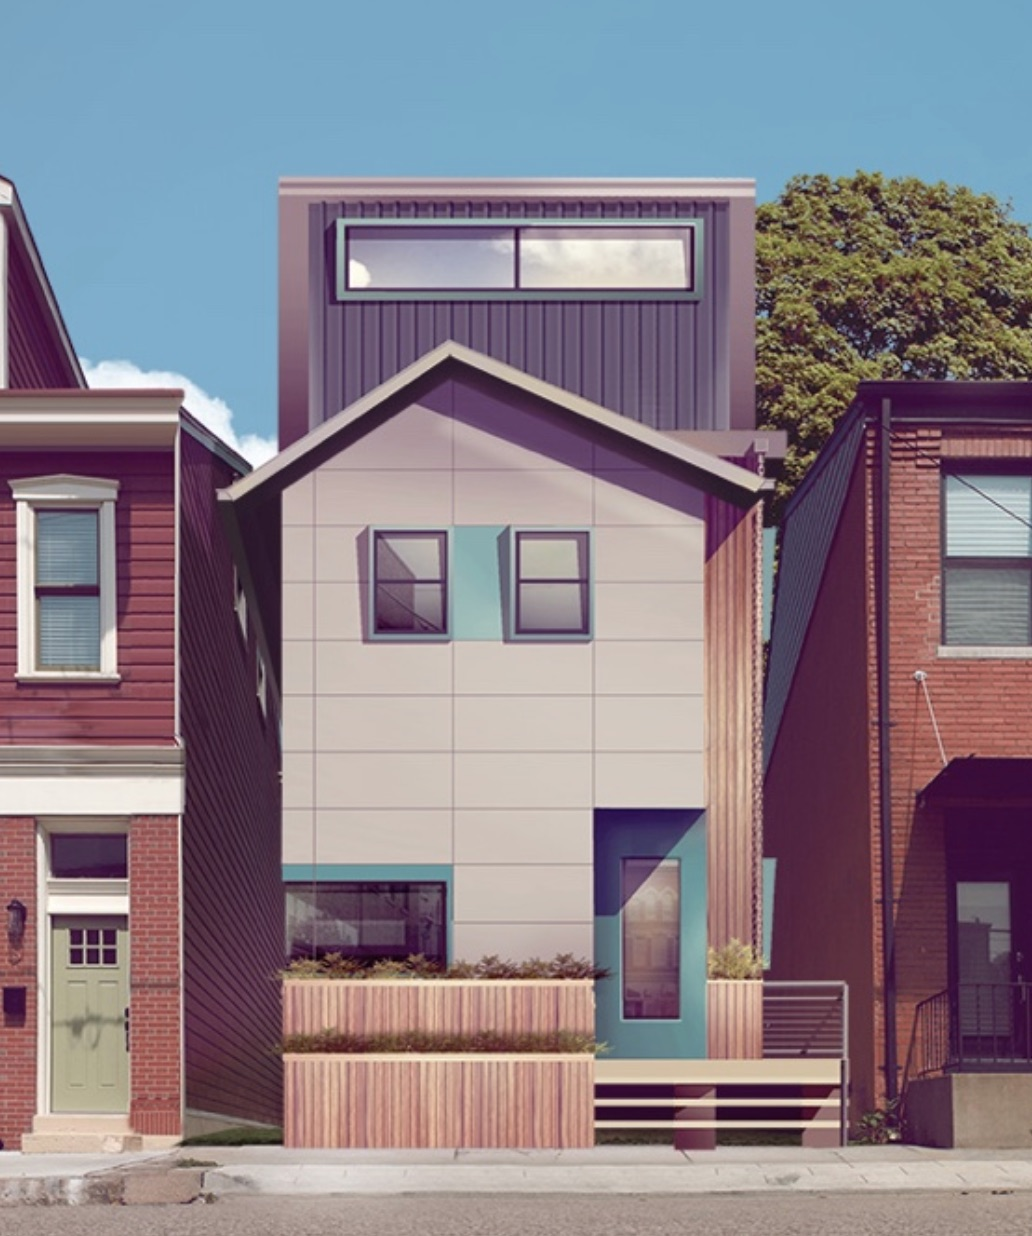 Pittsburgh Startup Module Designs Urban Homes With Energy Saving, Sustainable  Design Features